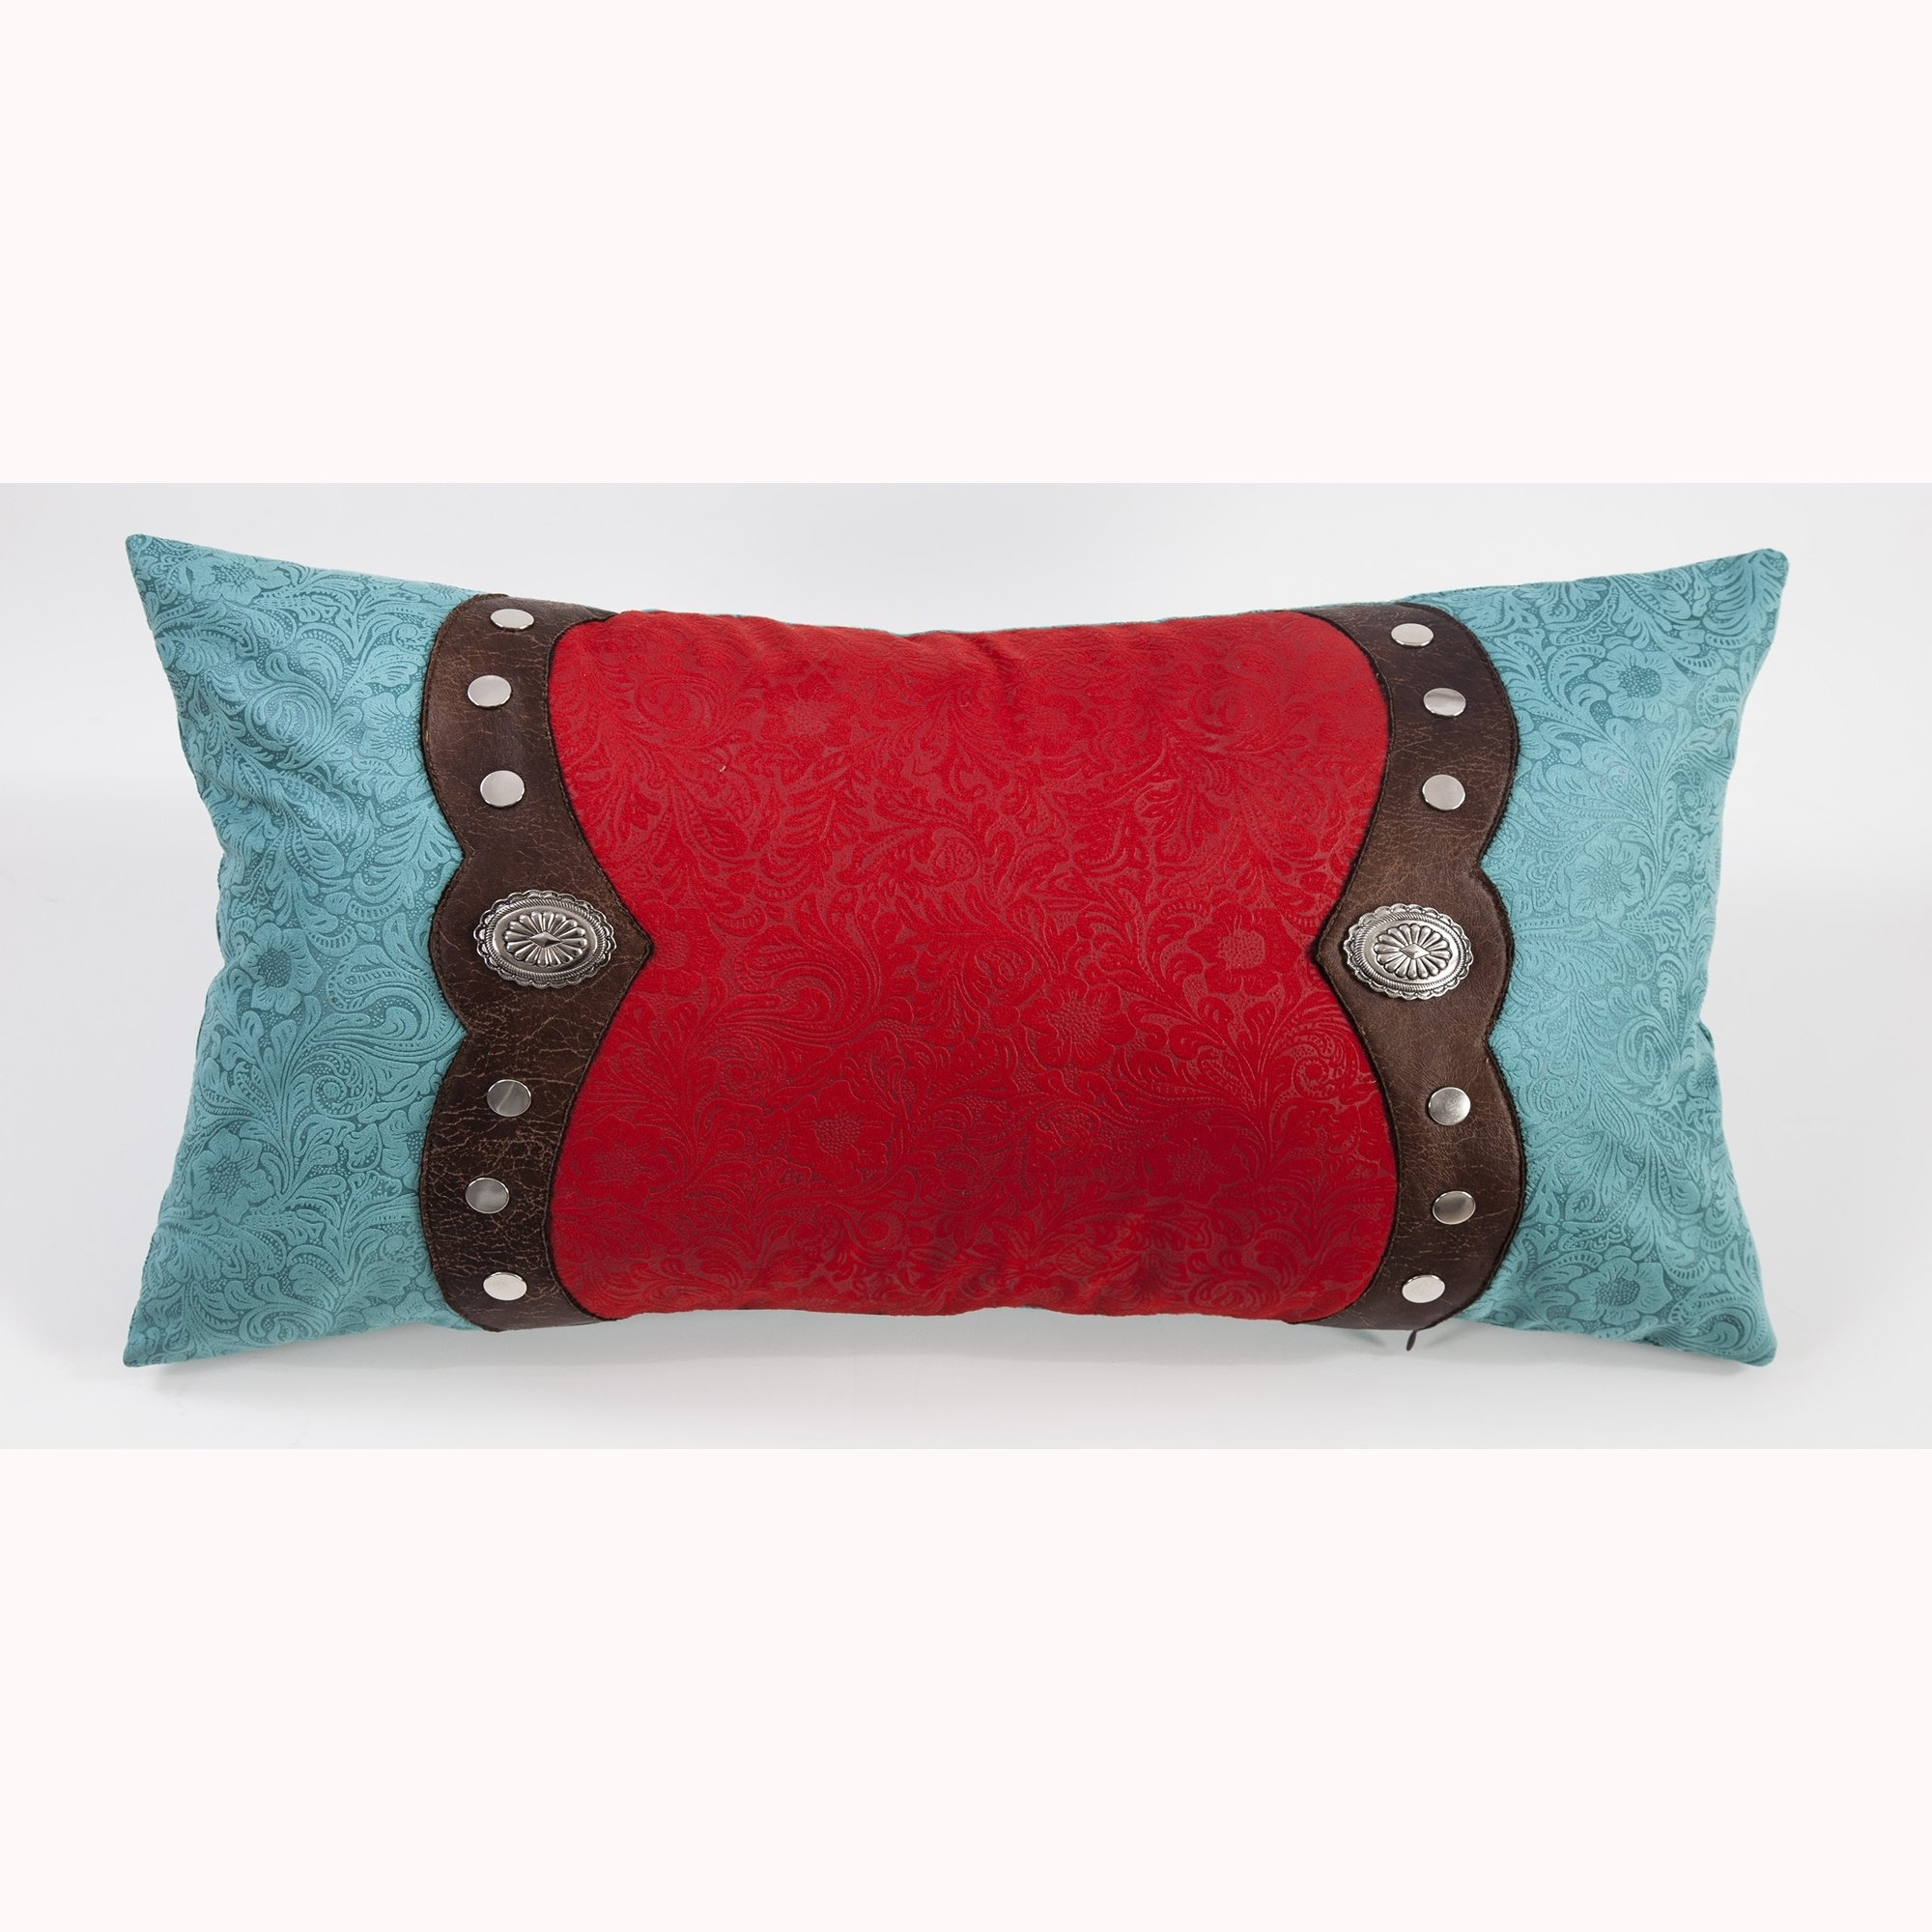 Saverio Odessa Boudoir Red/Turquoise Tool Leather Pillow With Trim, Conchos - Multicolor 24x14